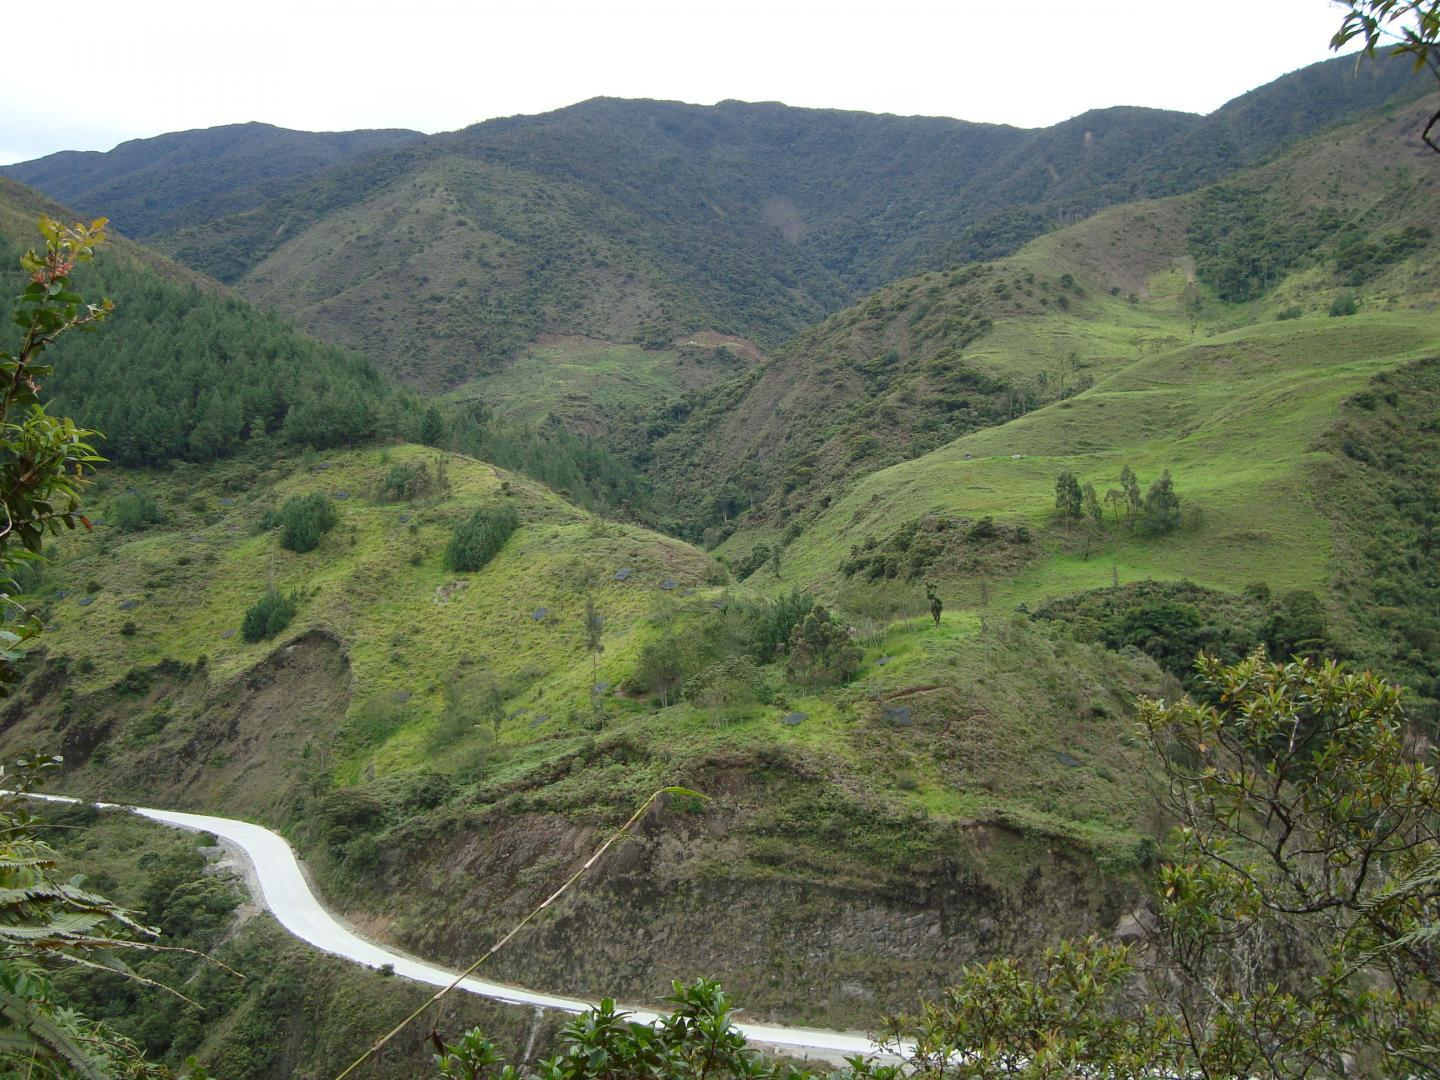 Protecting the rainforest through agriculture and forestry